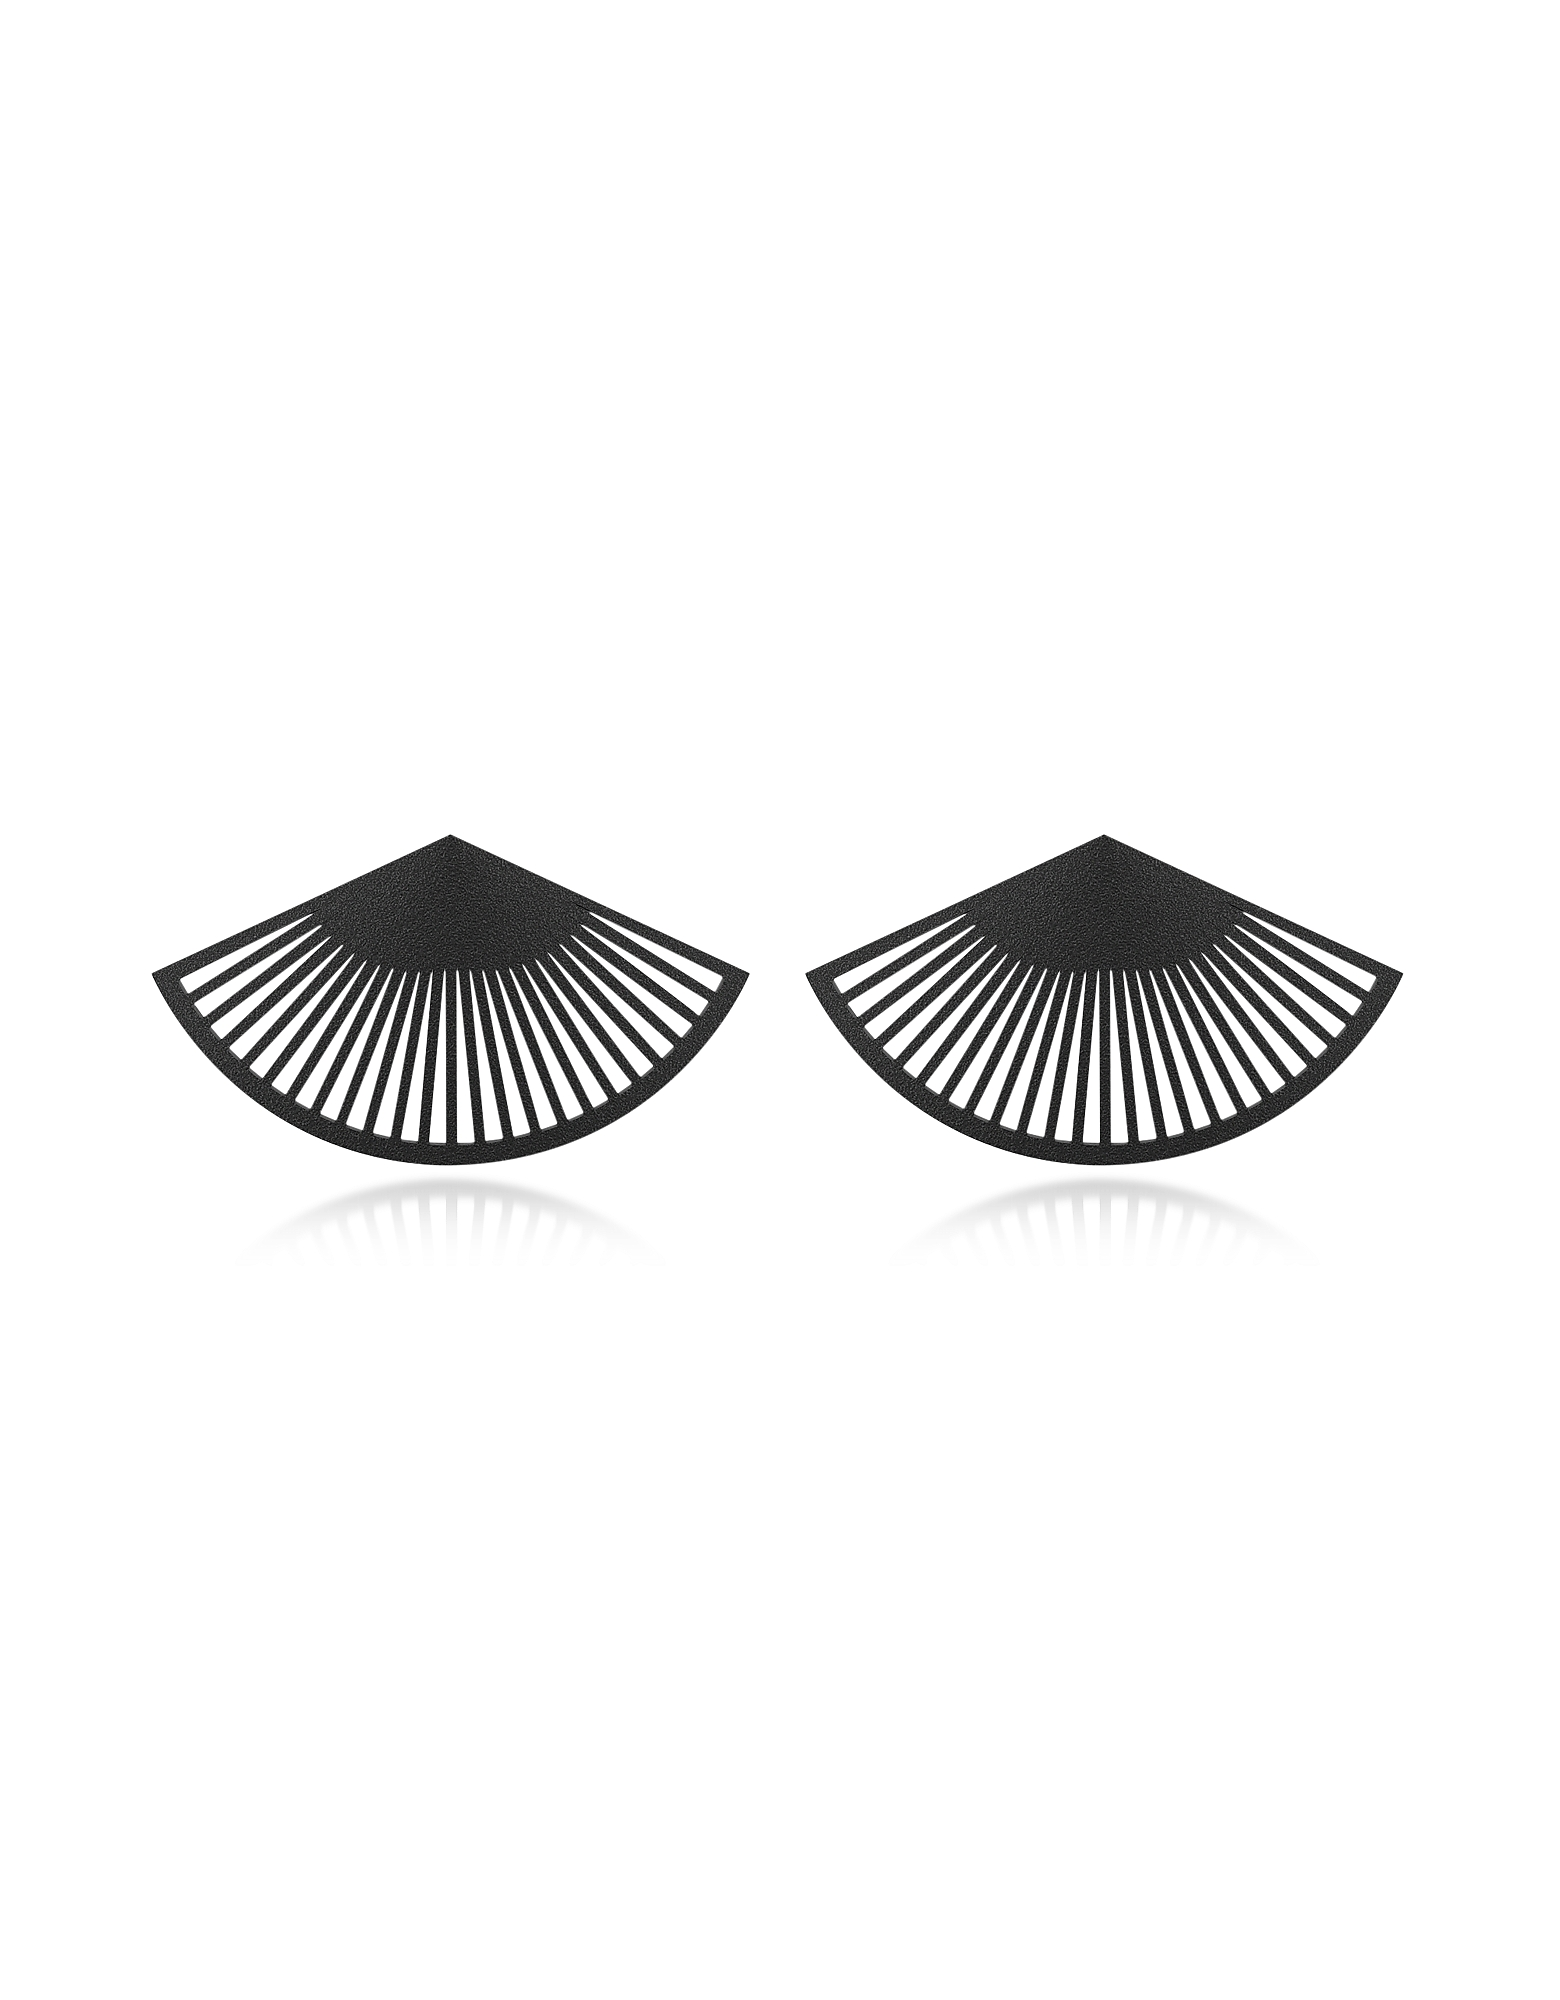 Vojd Studios Earrings, Phase Black Fan Earrings